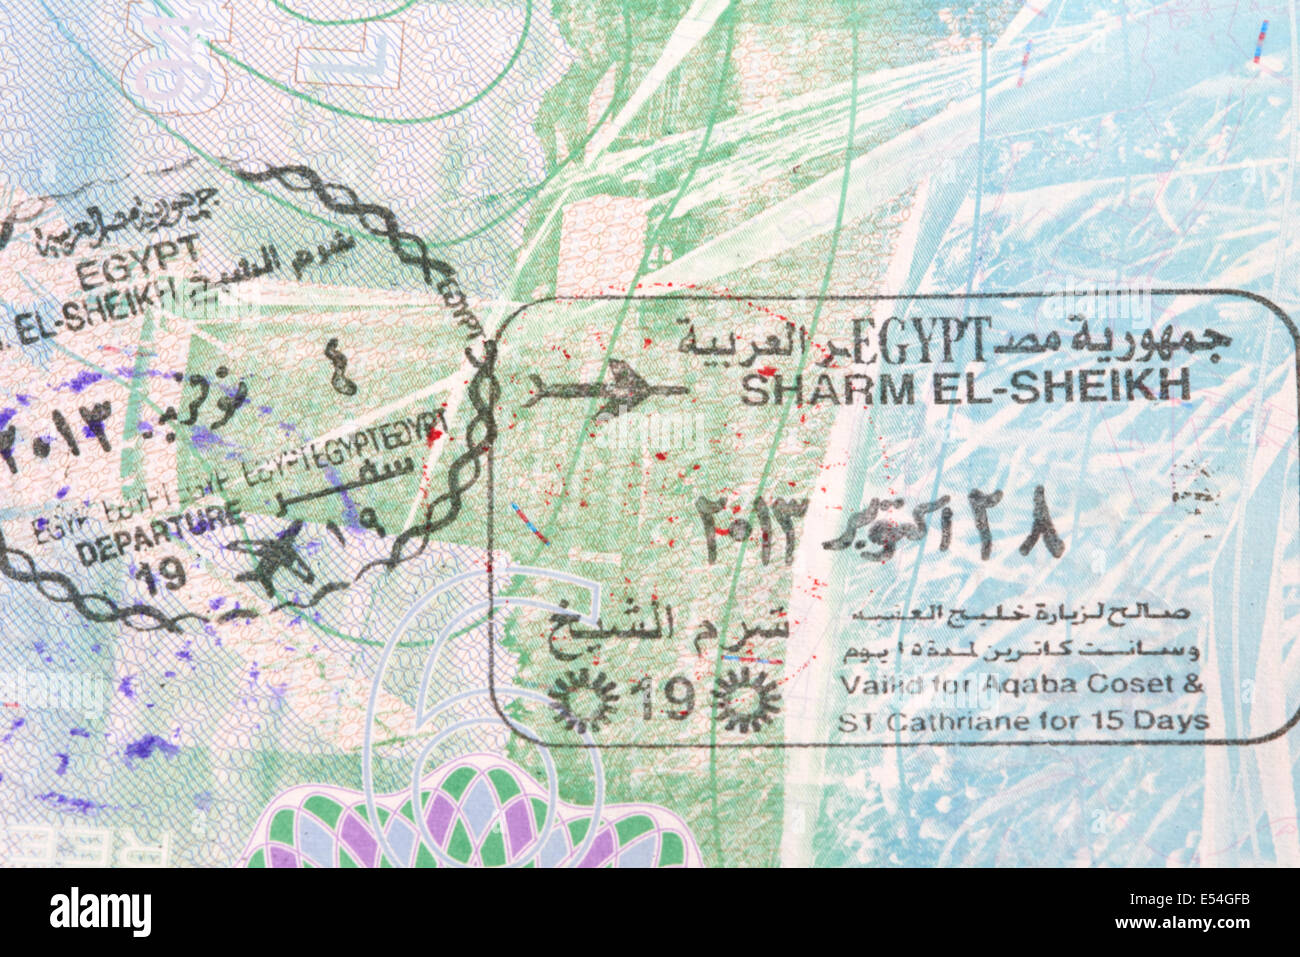 Entry and exit stamps for sharm el sheikh egypt in a british entry and exit stamps for sharm el sheikh egypt in a british passport gumiabroncs Choice Image